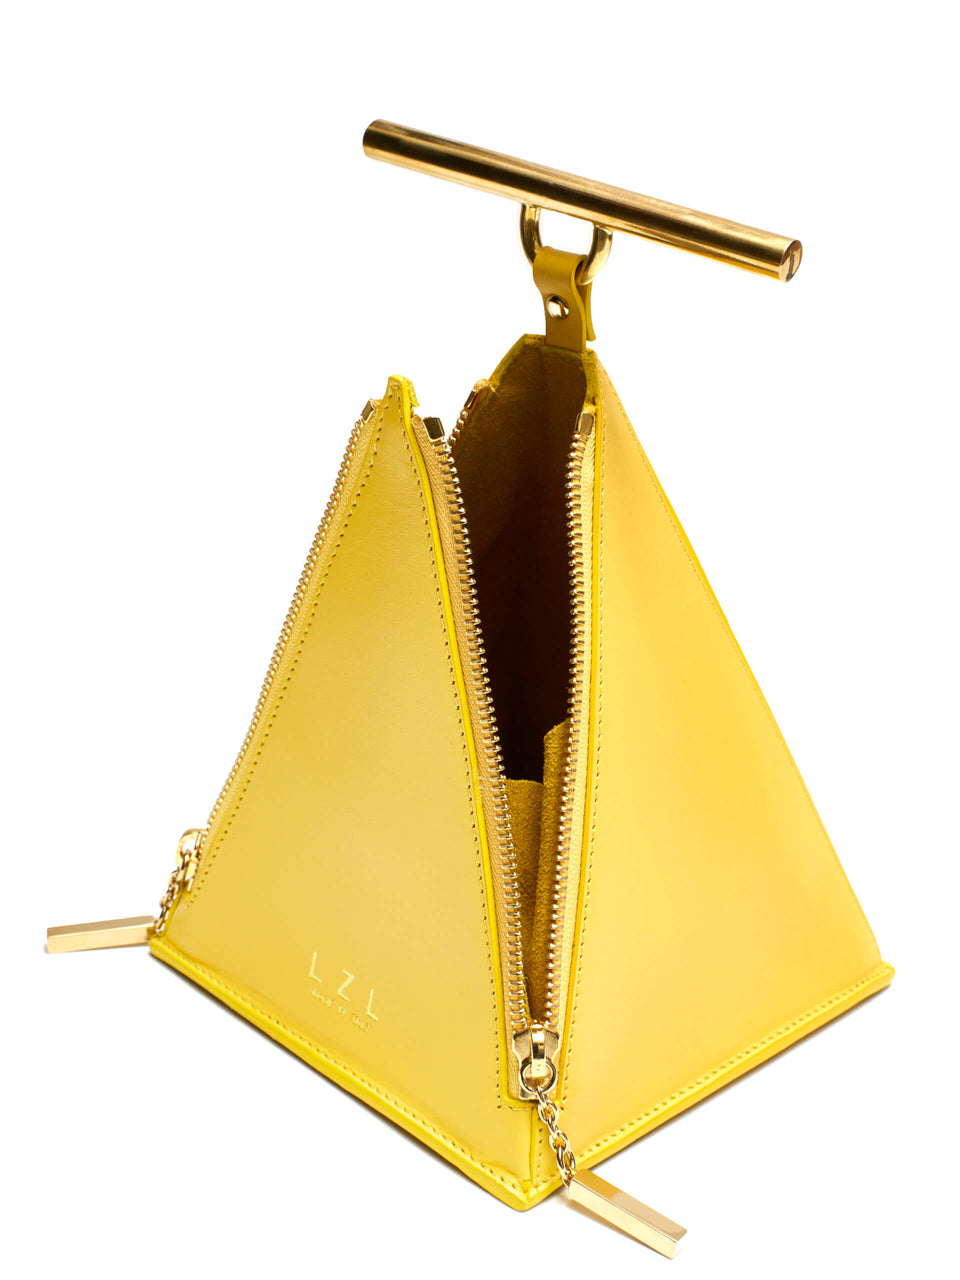 LZL Pyramid Bag 002 Yellow - Inside